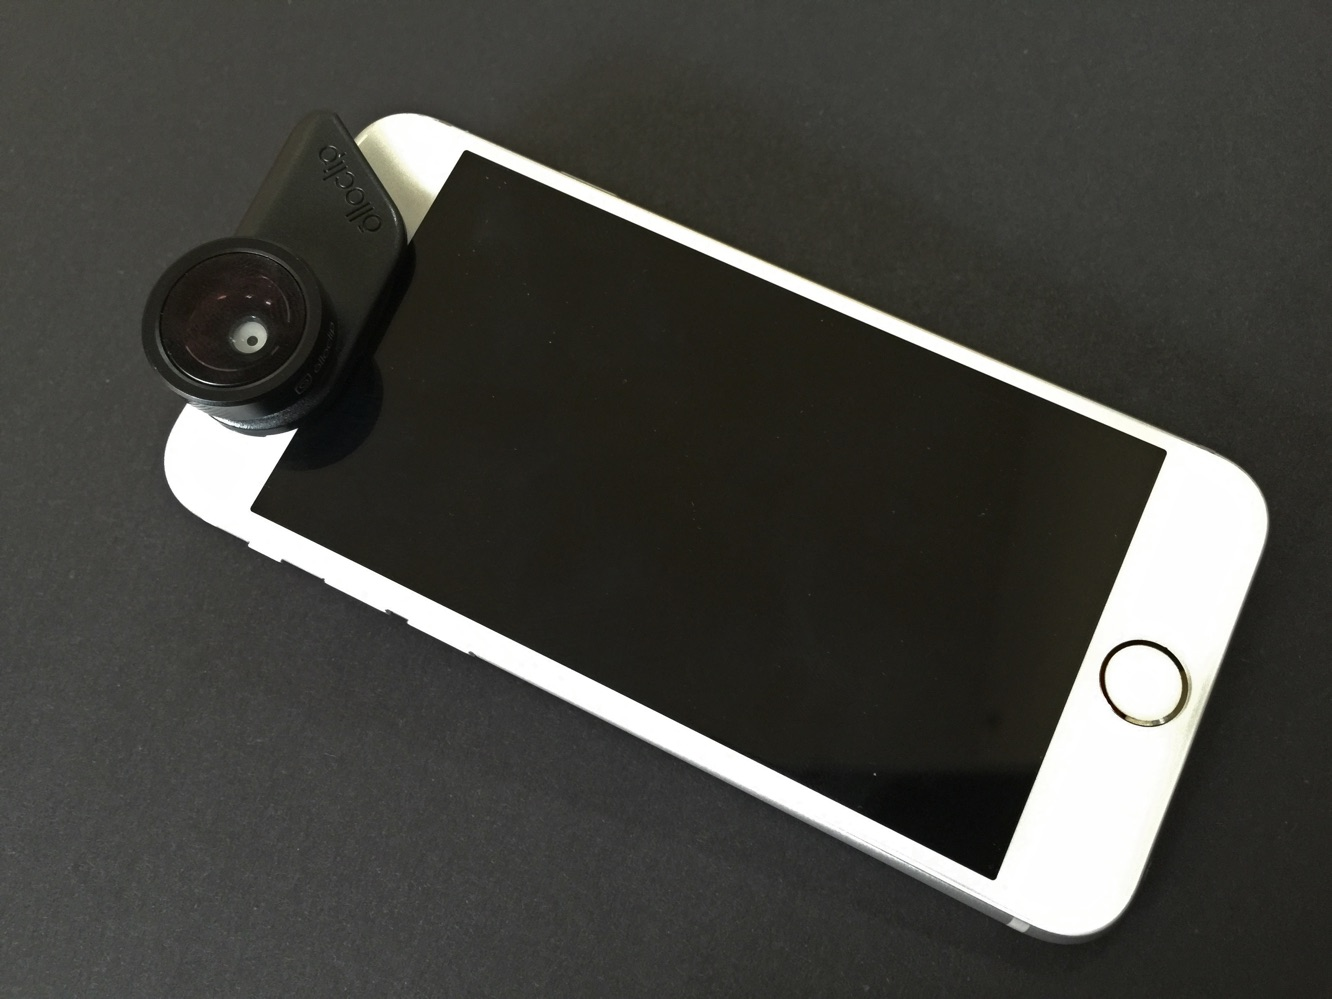 Review: Olloclip Active Lens for iPhone 6 and iPhone 6 Plus